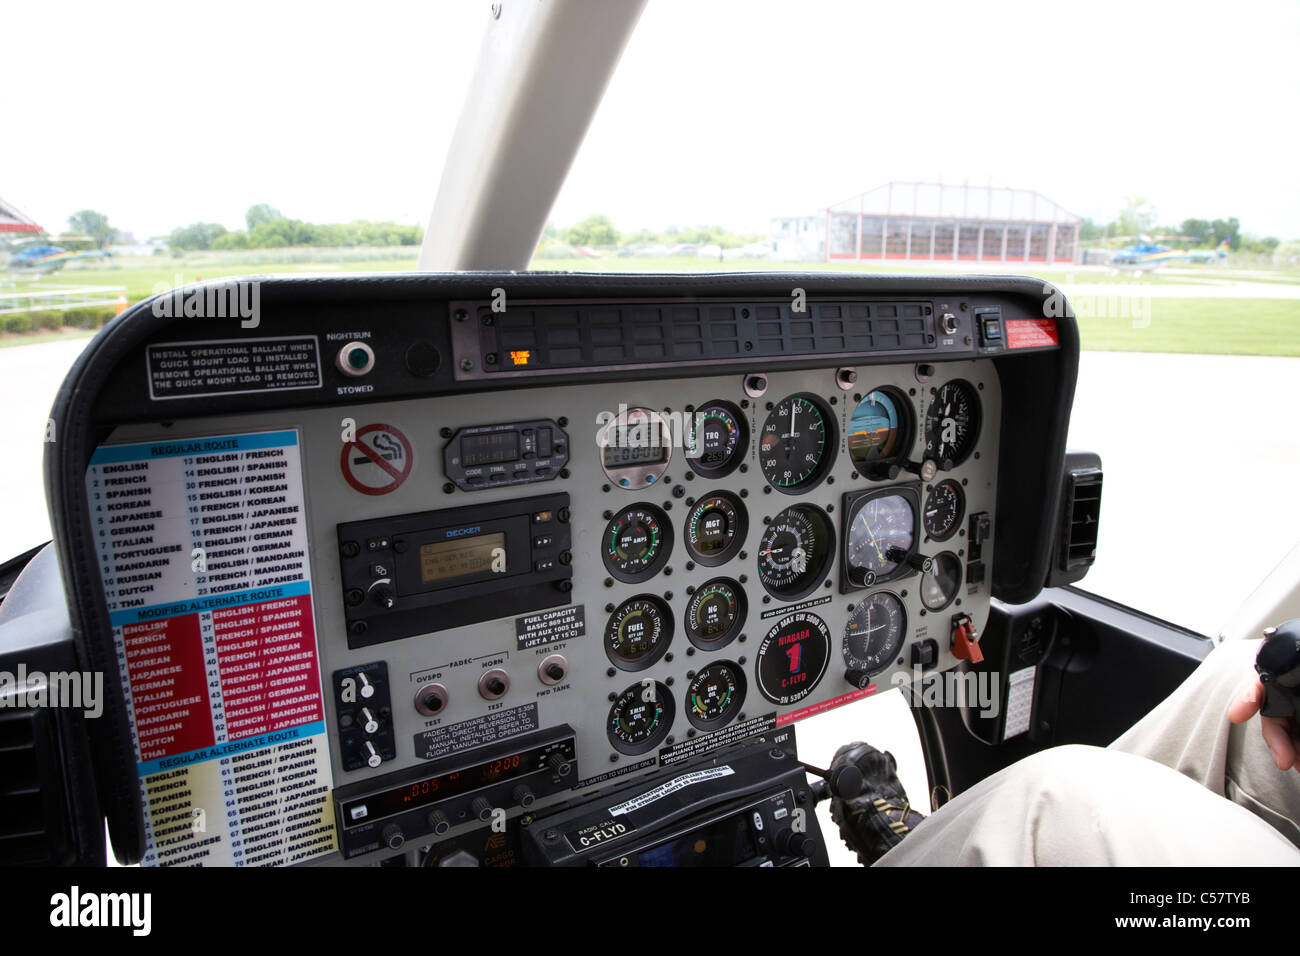 helicopter control panels and instruments niagara falls heliport ontario canada - Stock Image